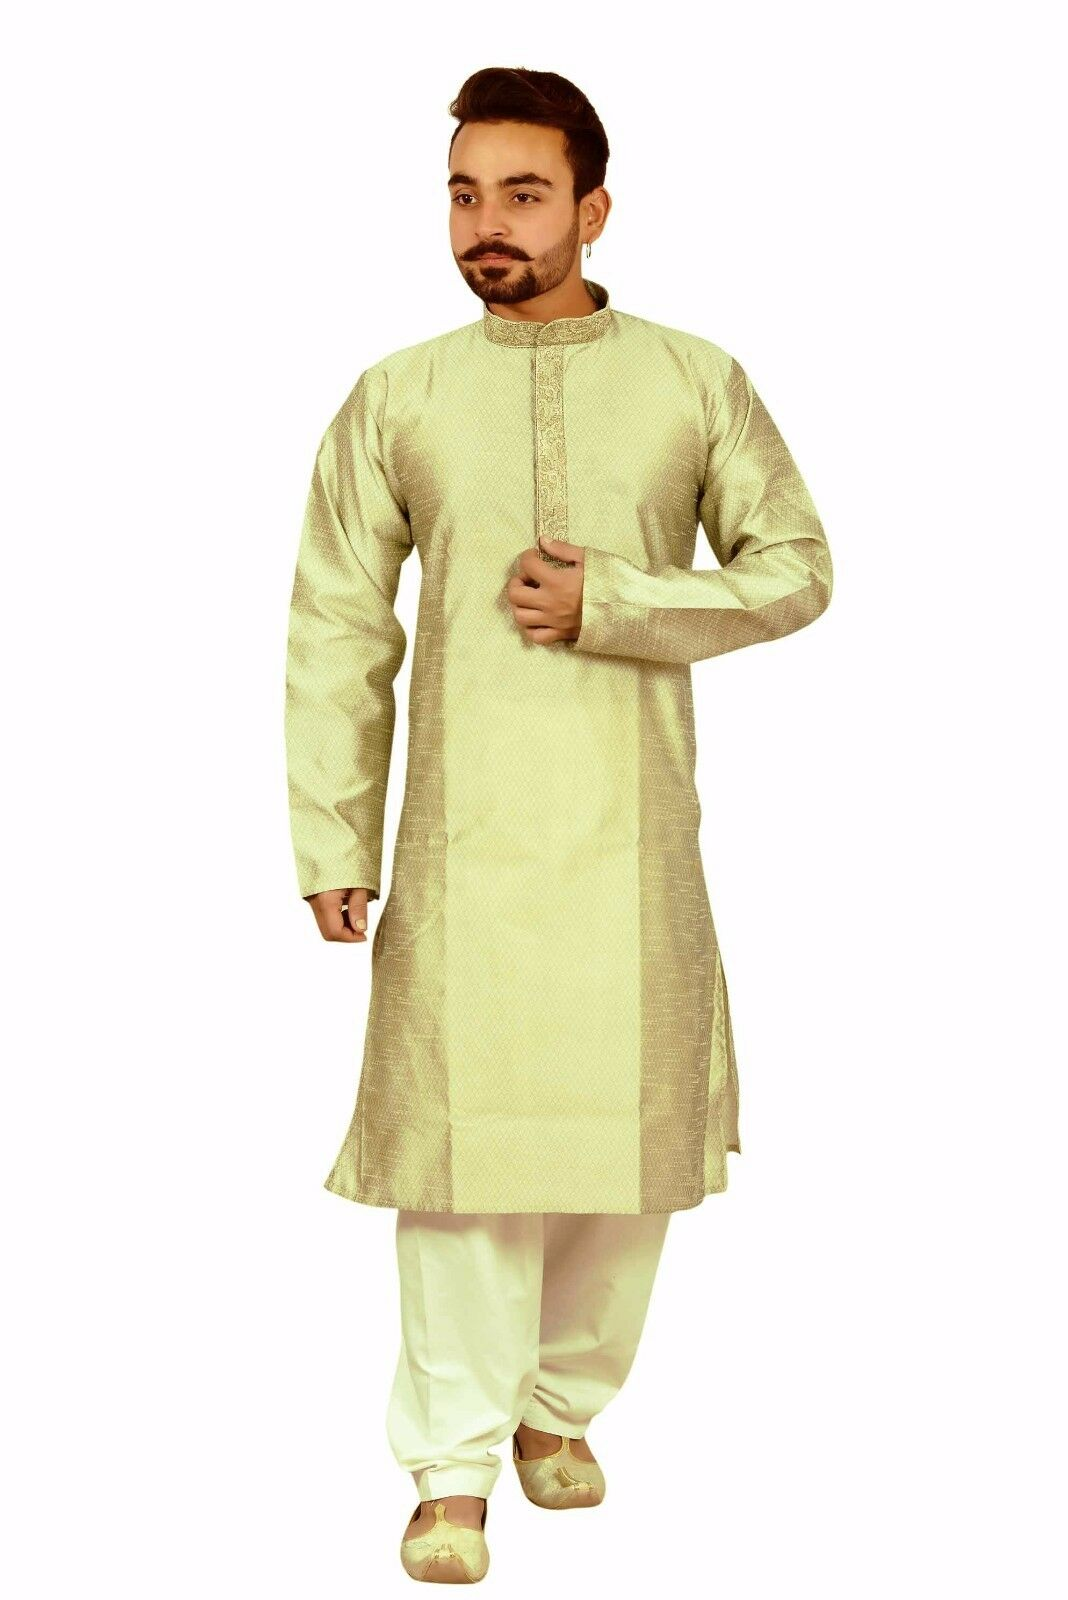 Men's Indian fashion kurta contrast Salwar kameez pyjama party wear sherwani 816